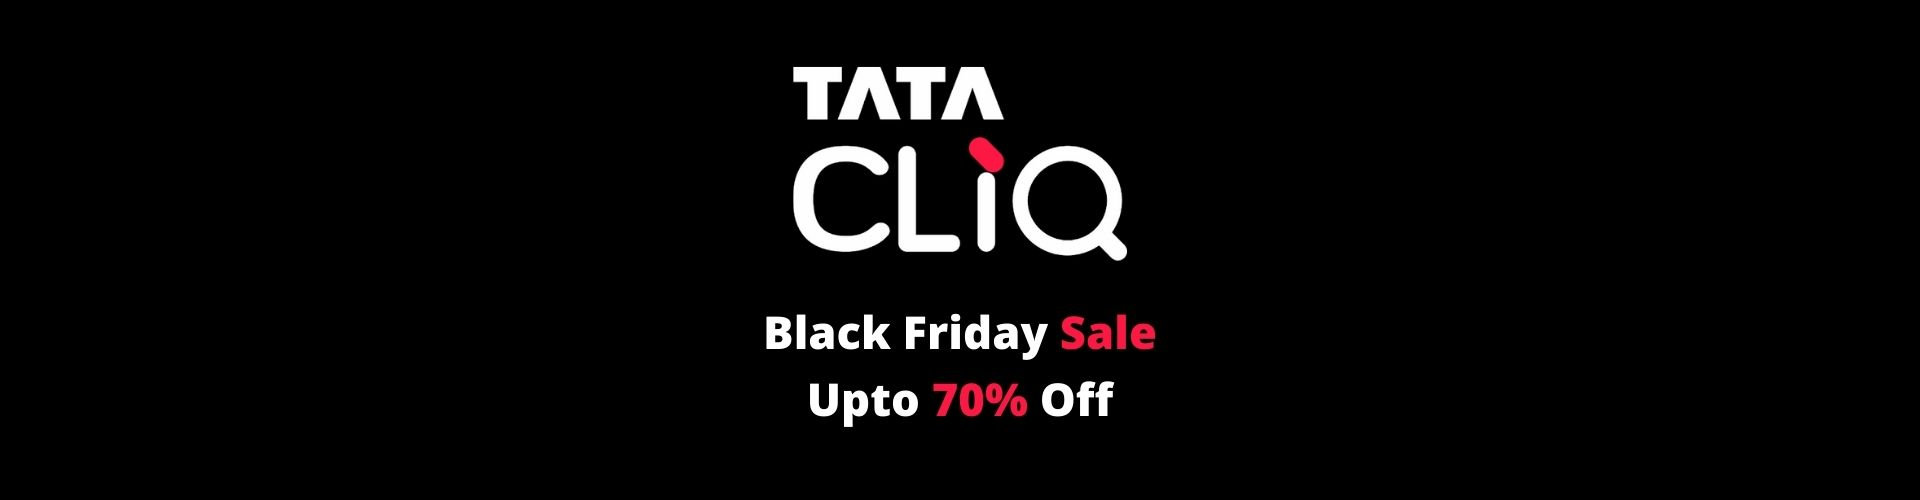 Tata Cliq Brings Black friday Get offers upto 70% with extra 3% Cashback from flopoffer